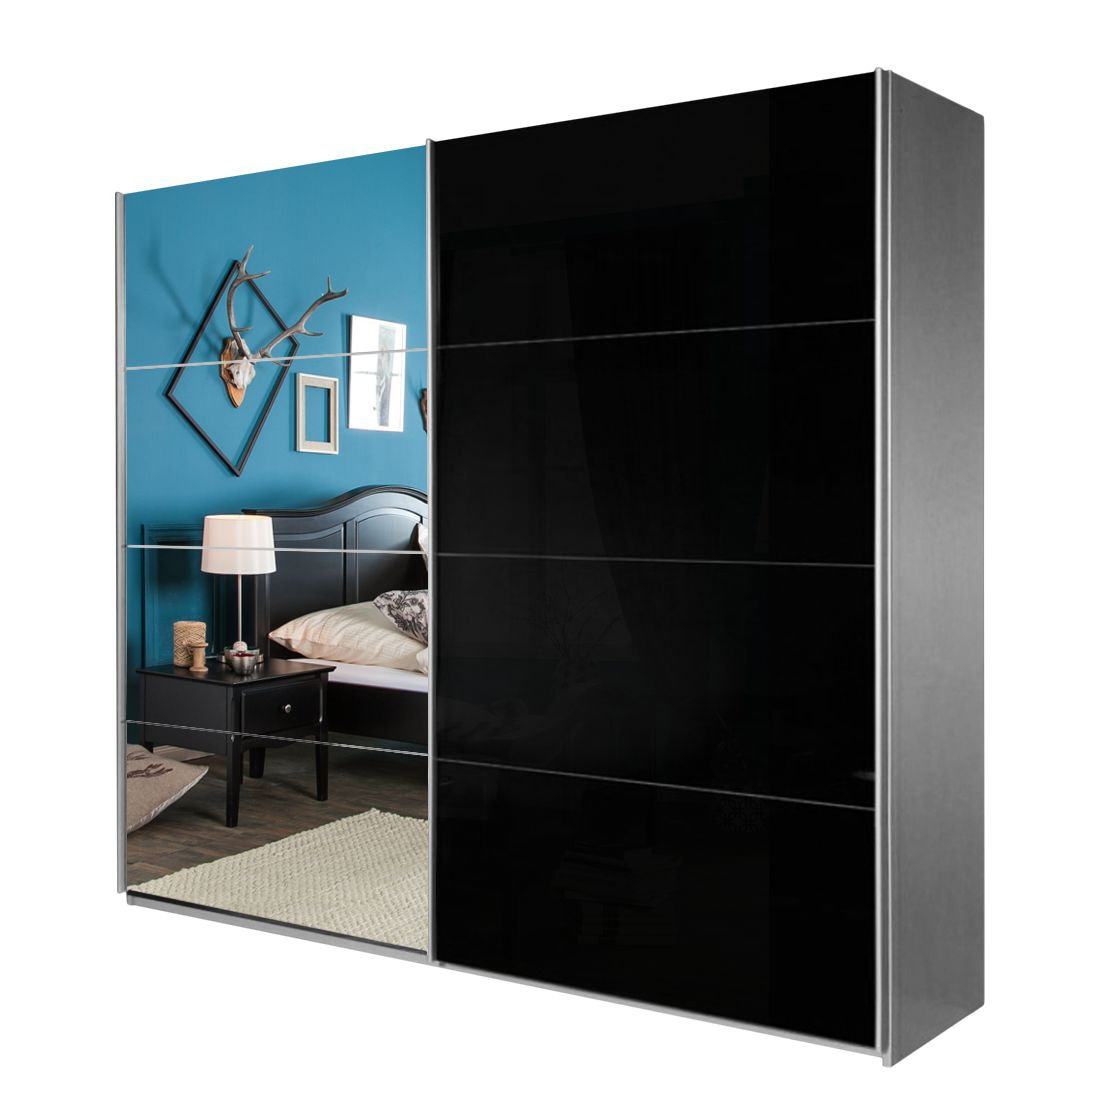 schwebet renschr nke archive seite 40 von 63. Black Bedroom Furniture Sets. Home Design Ideas